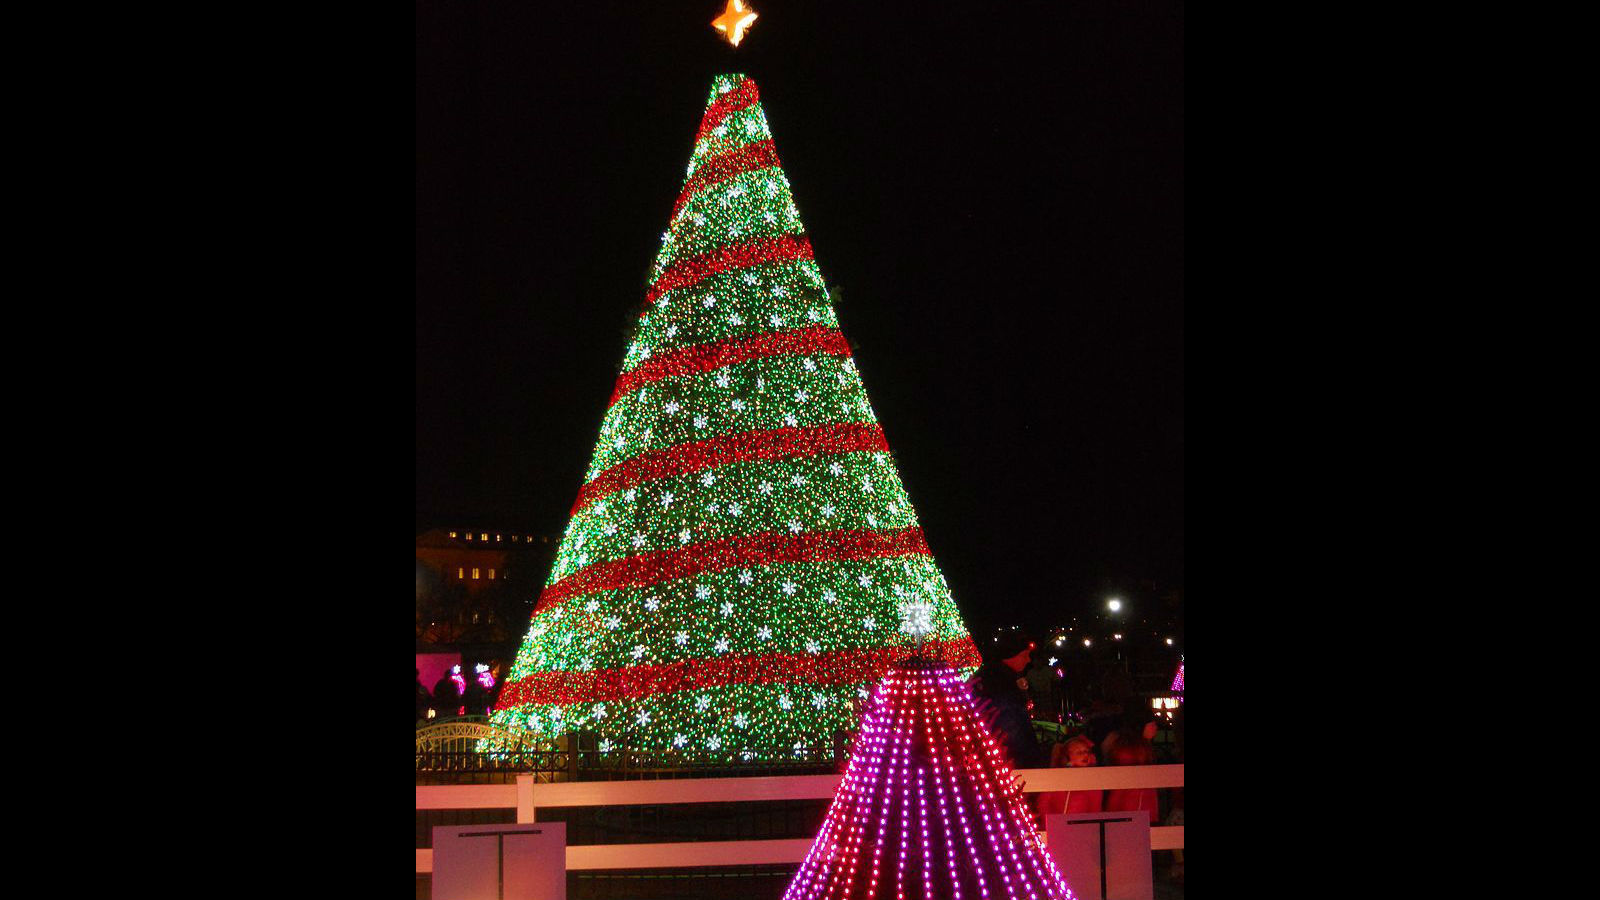 national christmas tree 5 things youll want to know besides how to get tickets to its lighting la times - Christmas Tree Lights